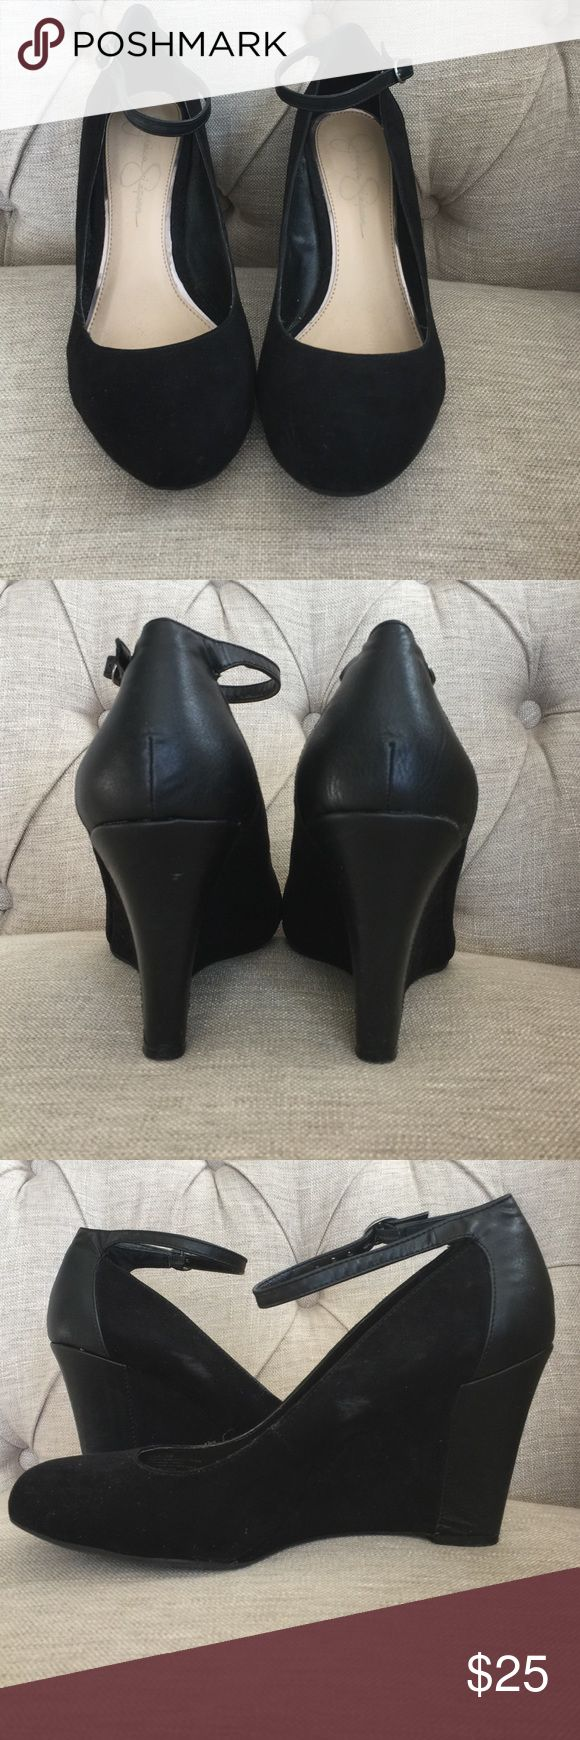 BLACK WEDGE PUMPS Jessica Simpson pumps. Velvet and leather combo. Very classy! Jessica Simpson Shoes Wedges